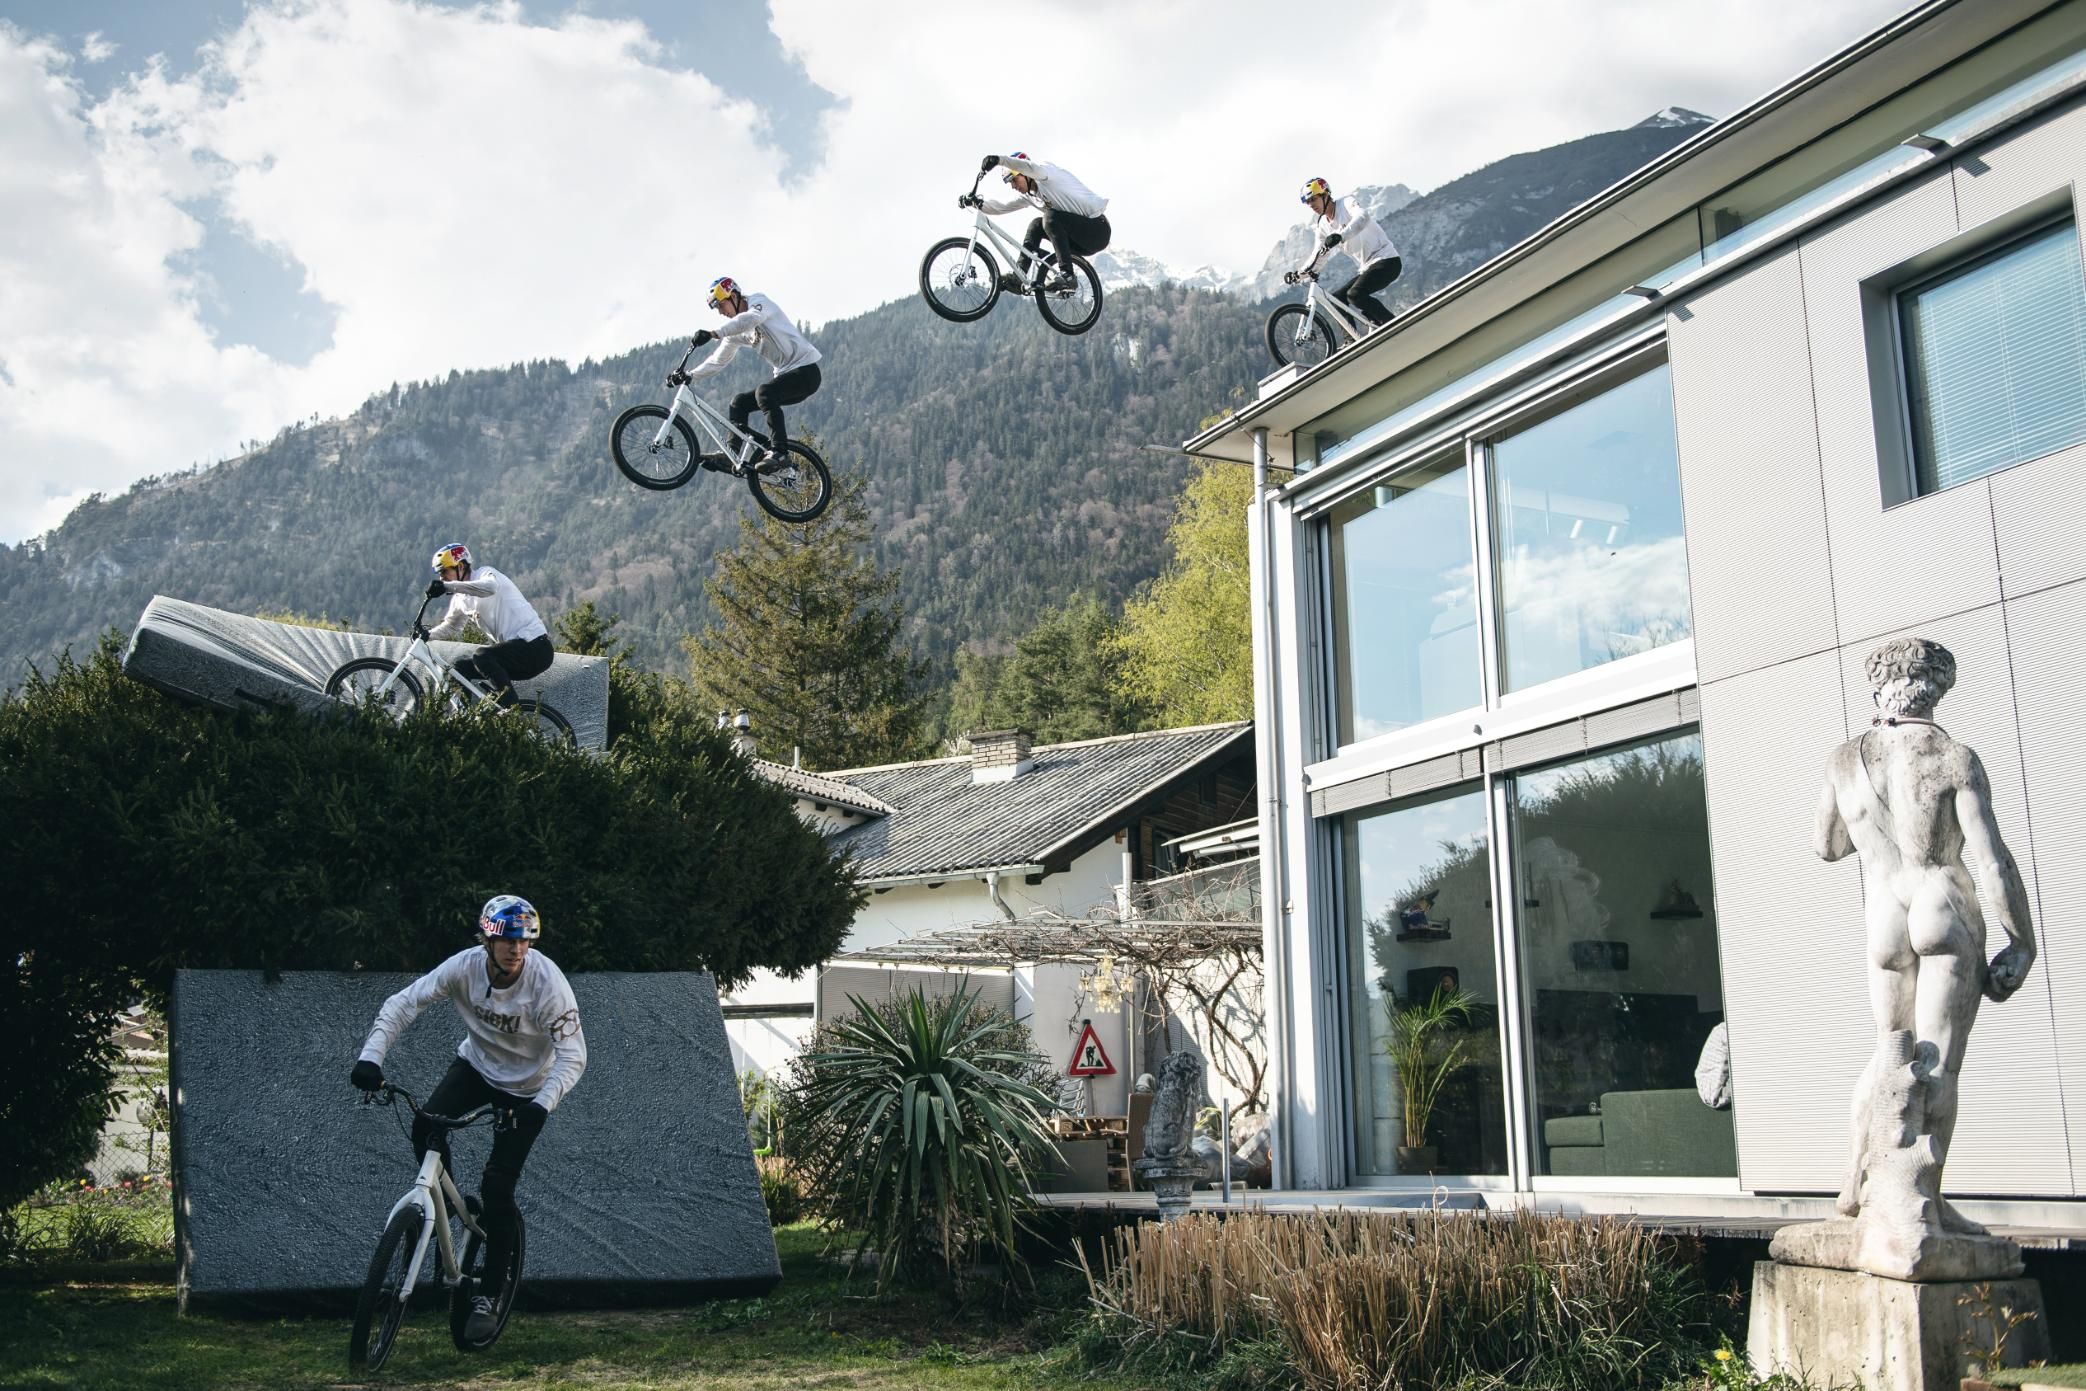 Daredevil biker Fabio Wibmer swaps mountains for washing machine stunts